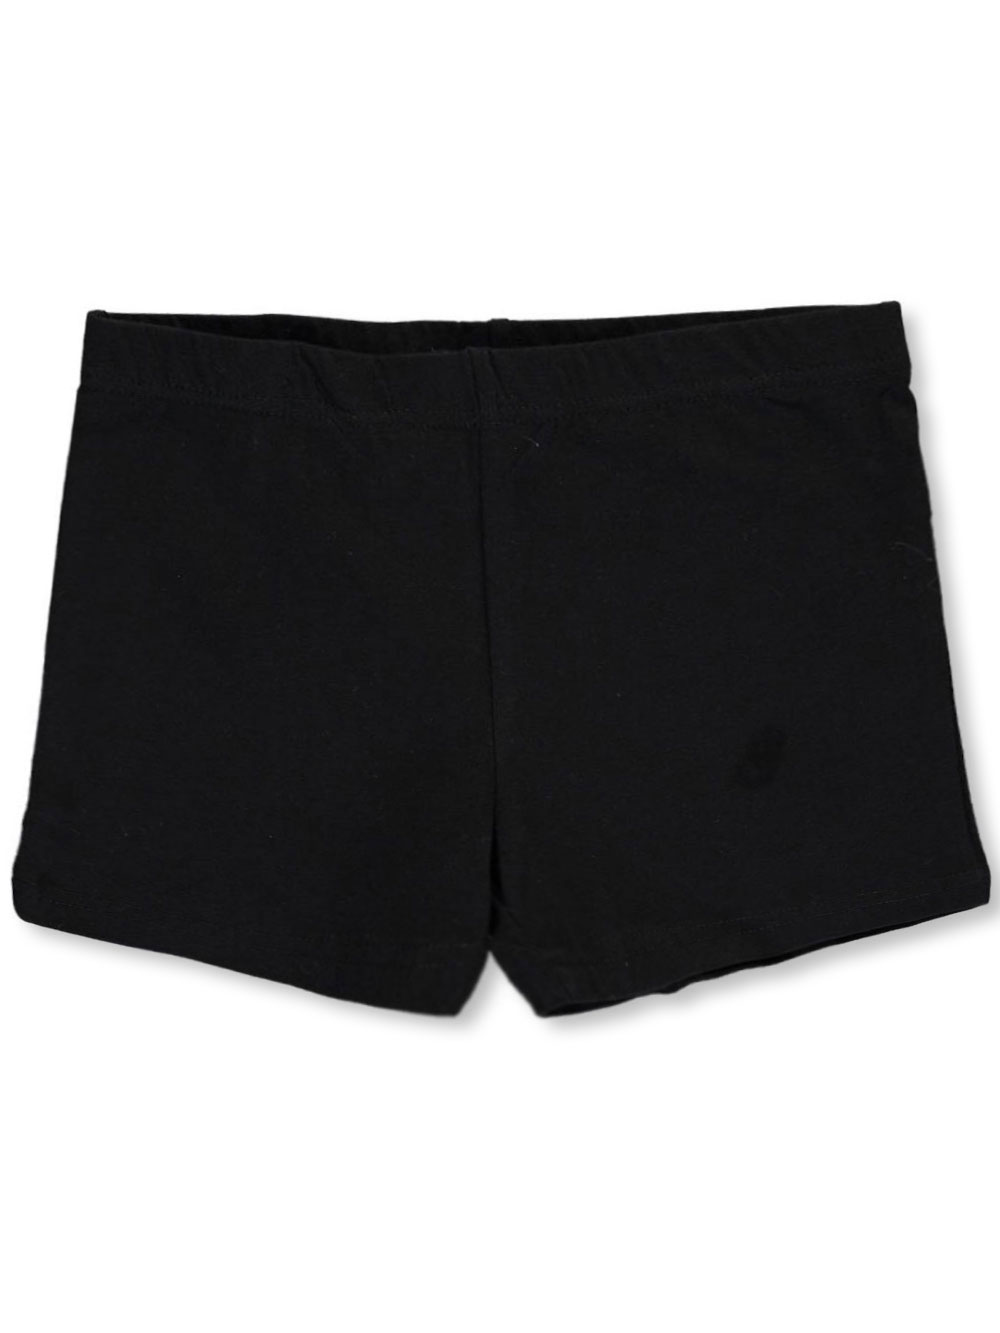 Size 10 Shorts for Girls